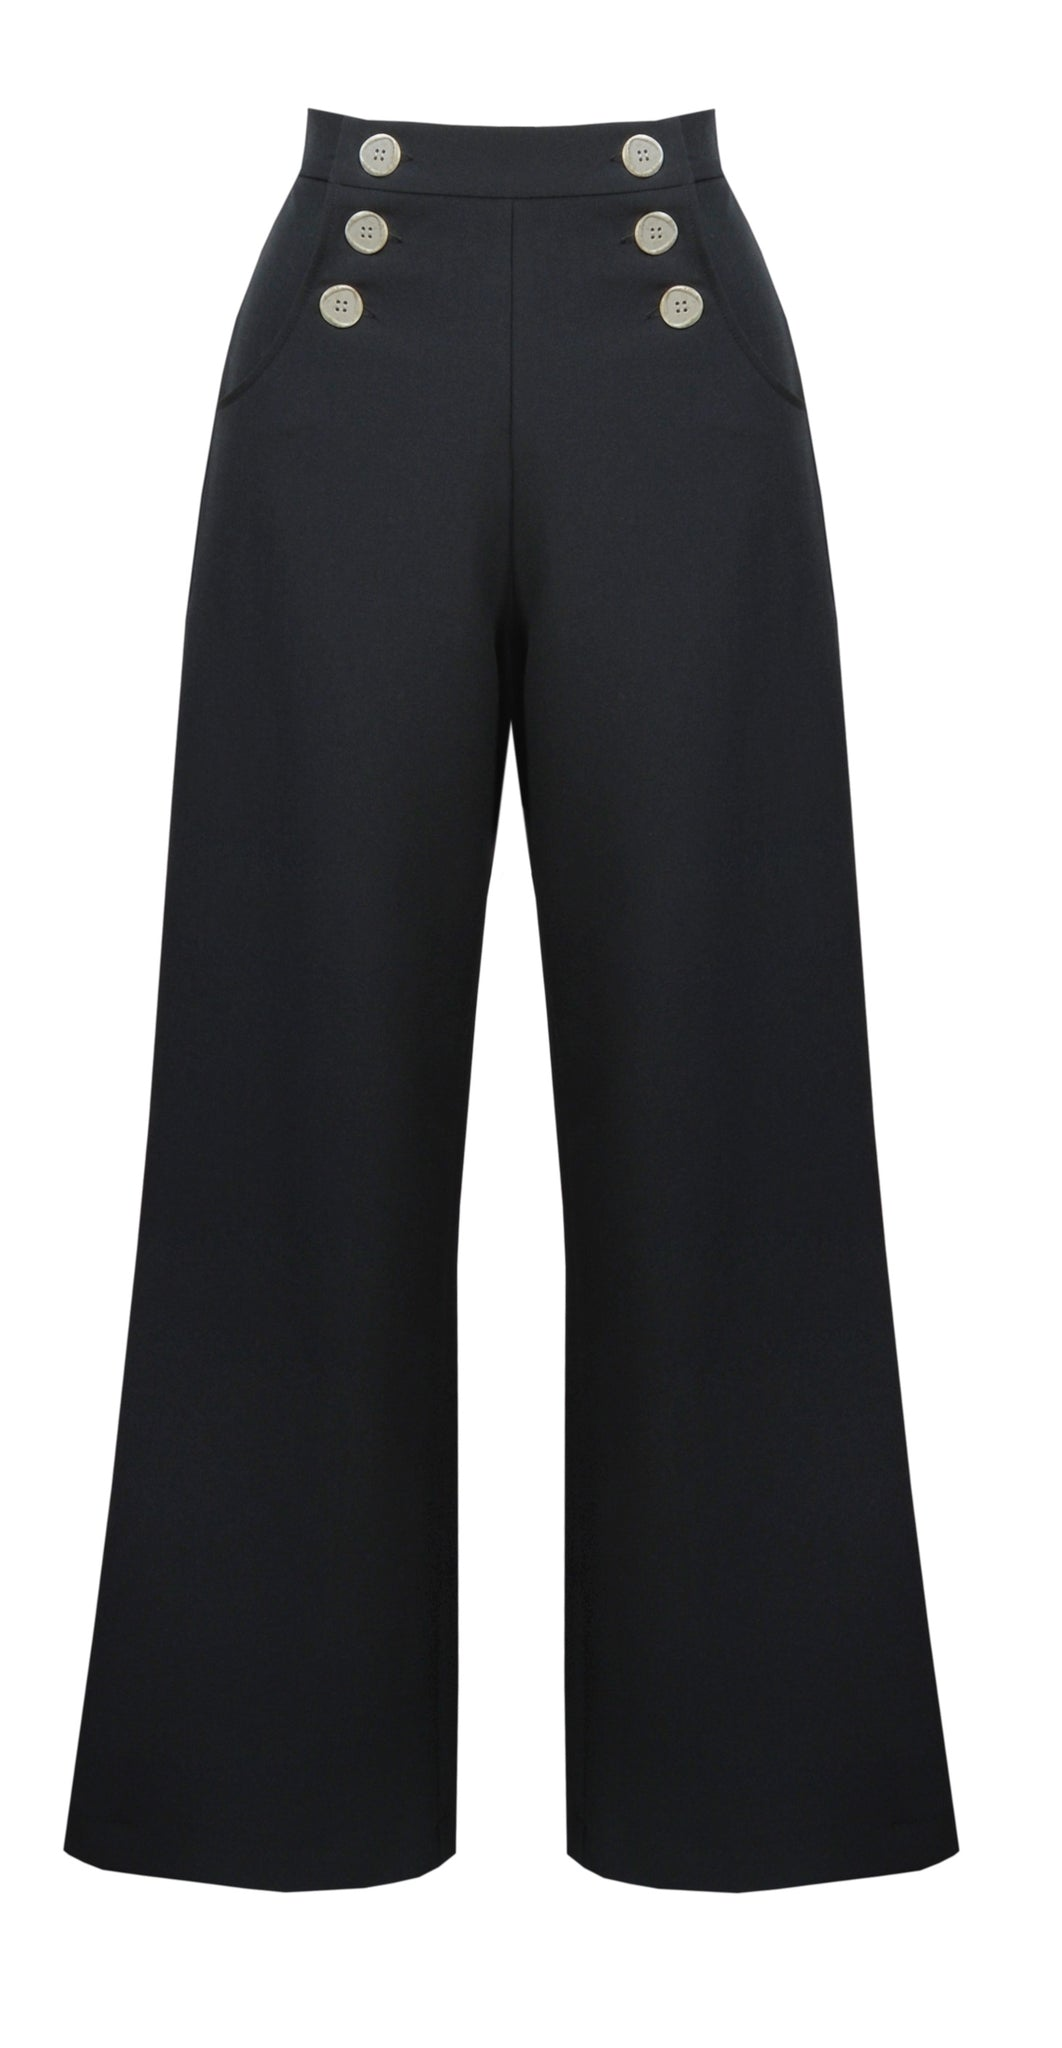 Retro Sailor Slacks - Black - Bowler Vintage